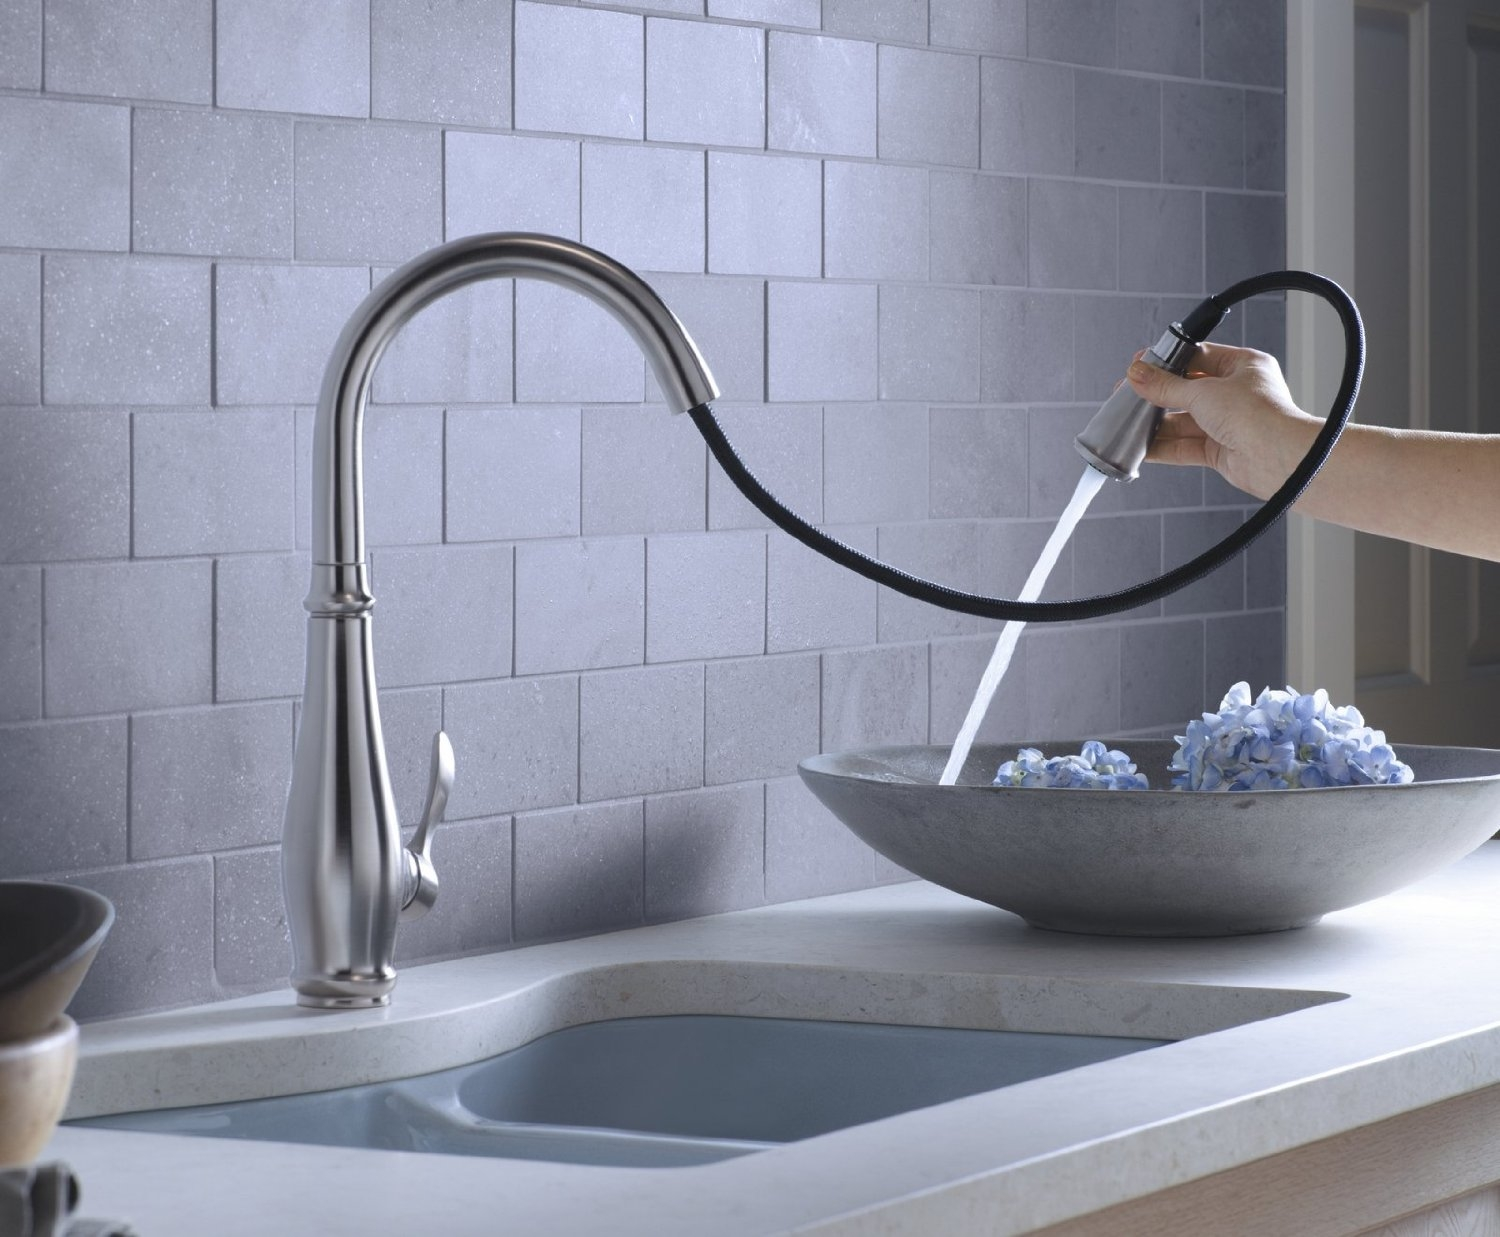 Ideas, most popular kitchen faucets 2014 most popular kitchen faucets 2014 28 top kitchen faucet most popular kitchen faucets and 1500 x 1237  .